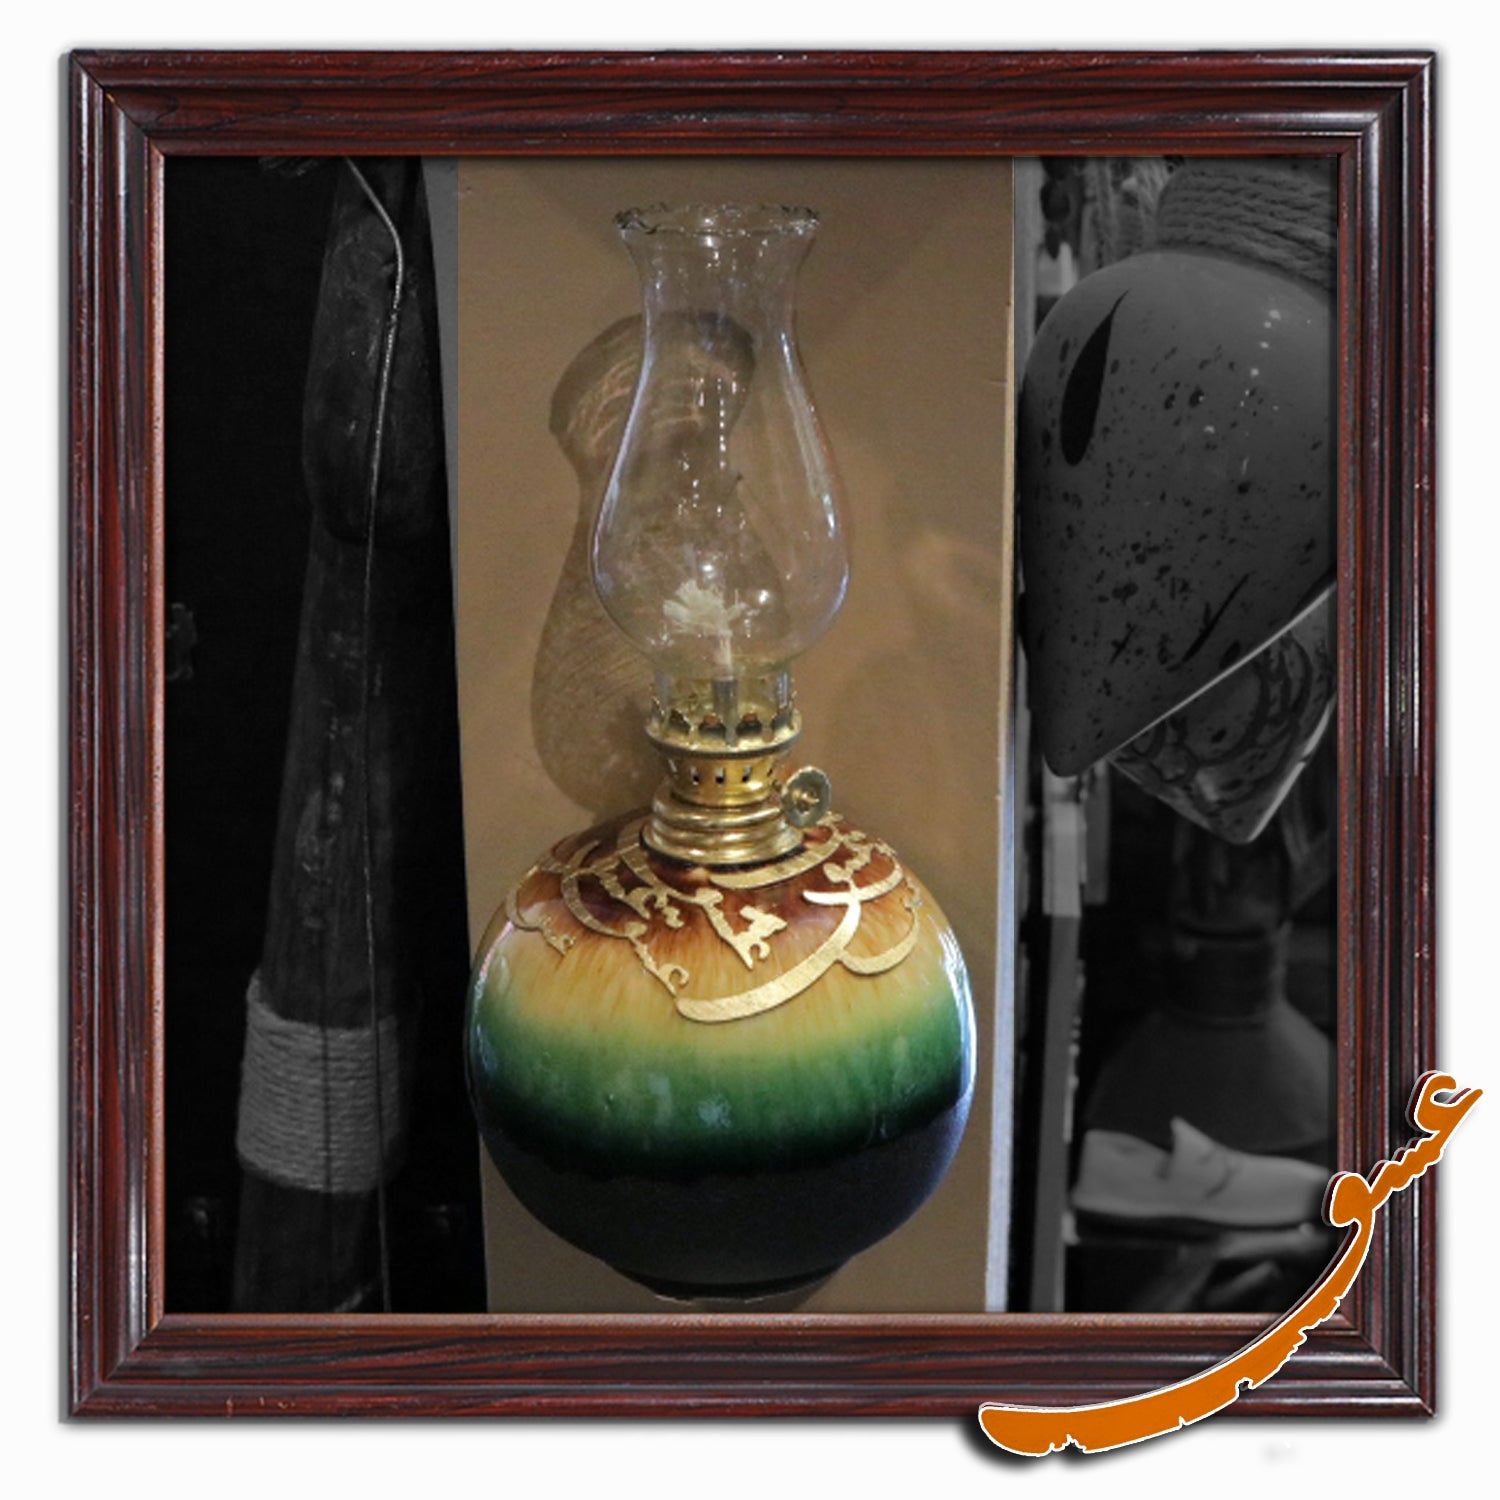 Kerosene Lamp For Wall Decor With Wooden Calligraphy And Ceramic Basem Gallery Eshgh